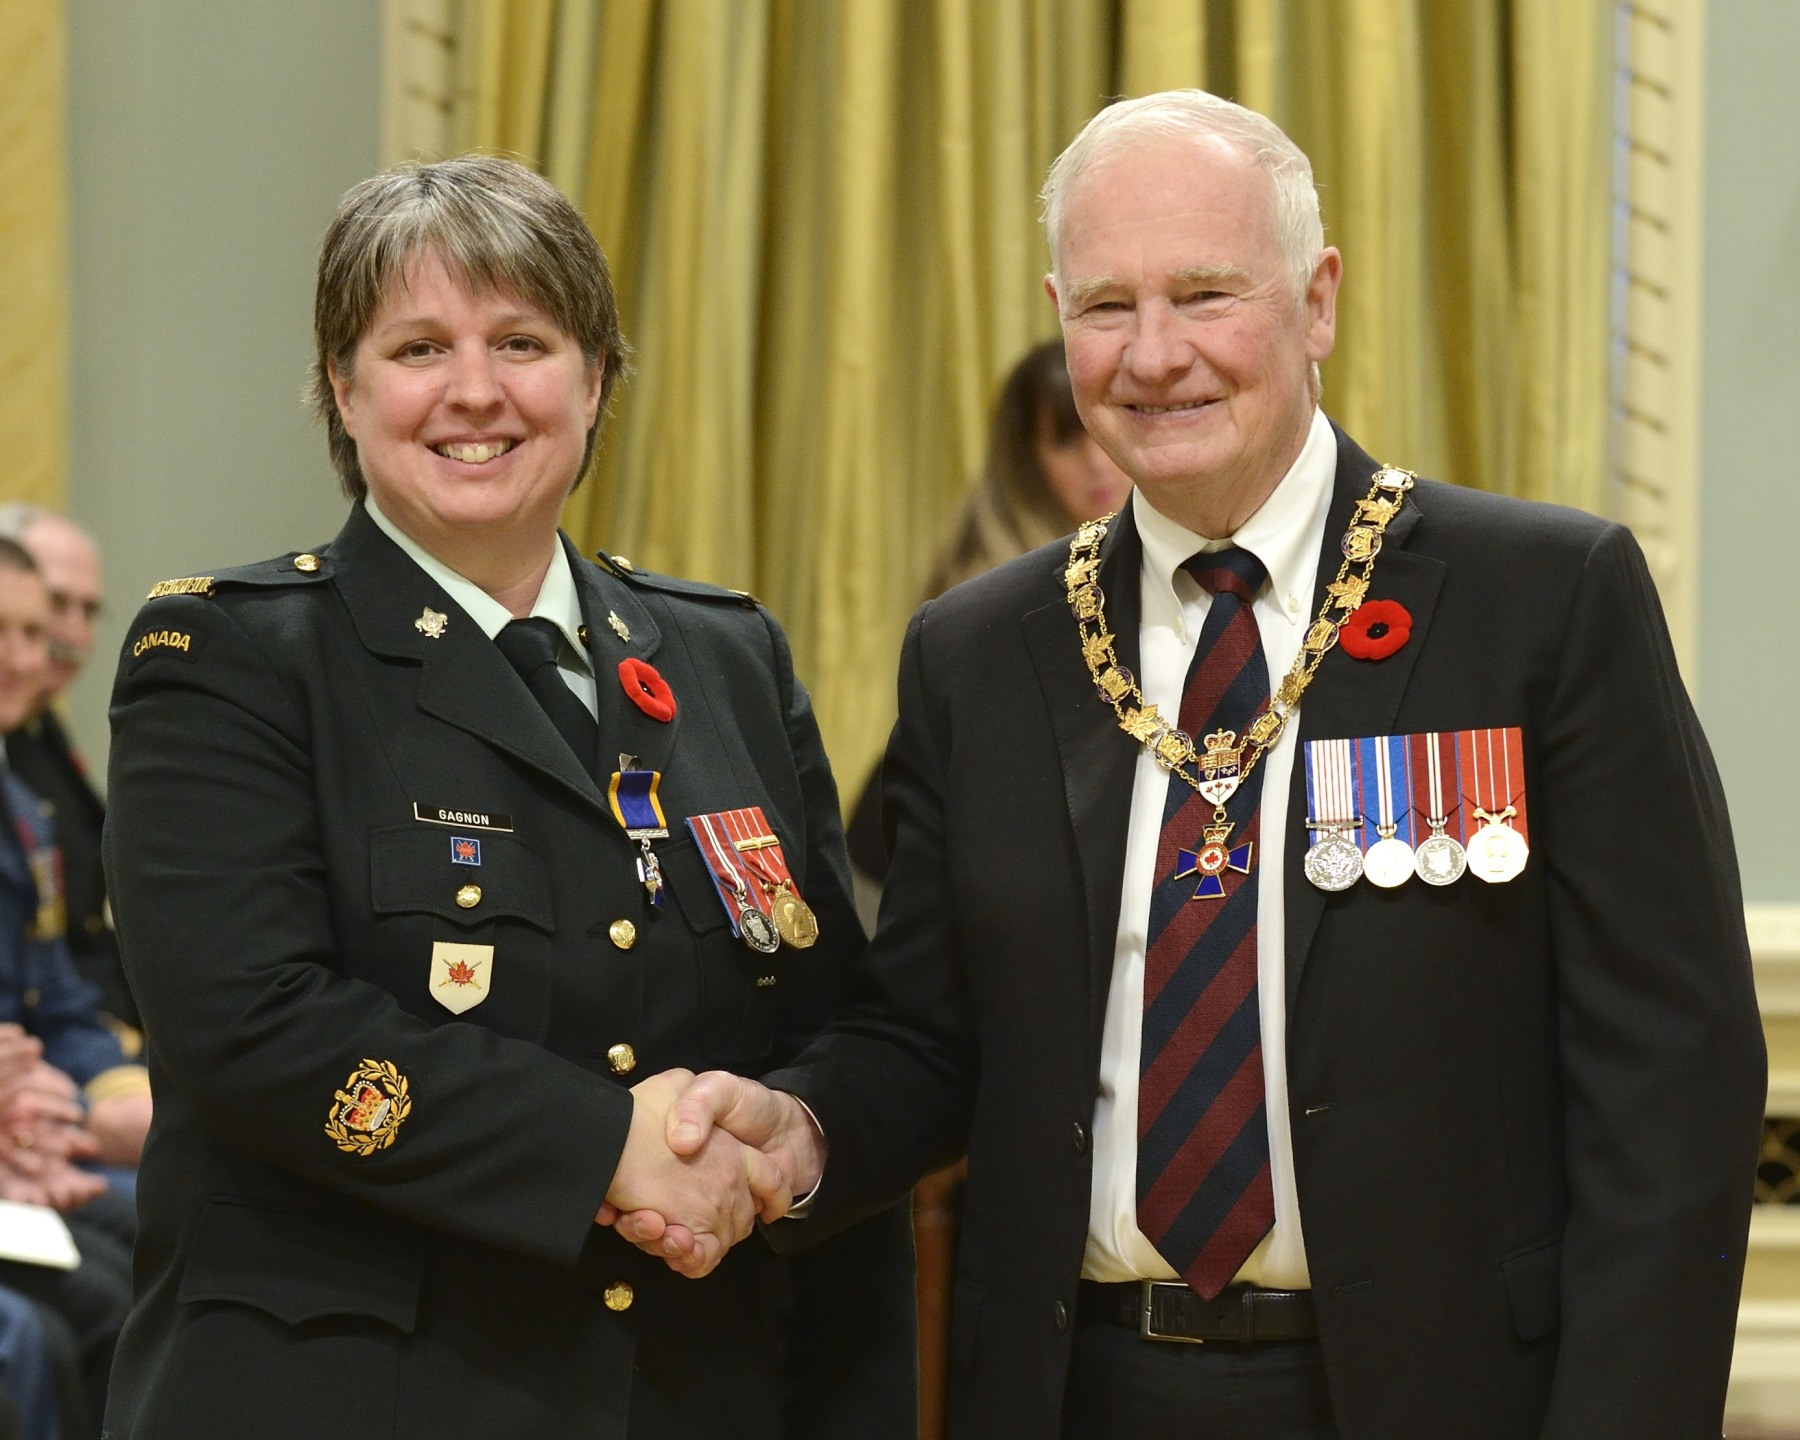 His Excellency presented the Order of Military Merit at the Member level (M.M.M.) to Master Warrant Officer Chantale Gagnon, M.M.M., C.D., 2 Canadian Division Headquarters, Montréal, Quebec.